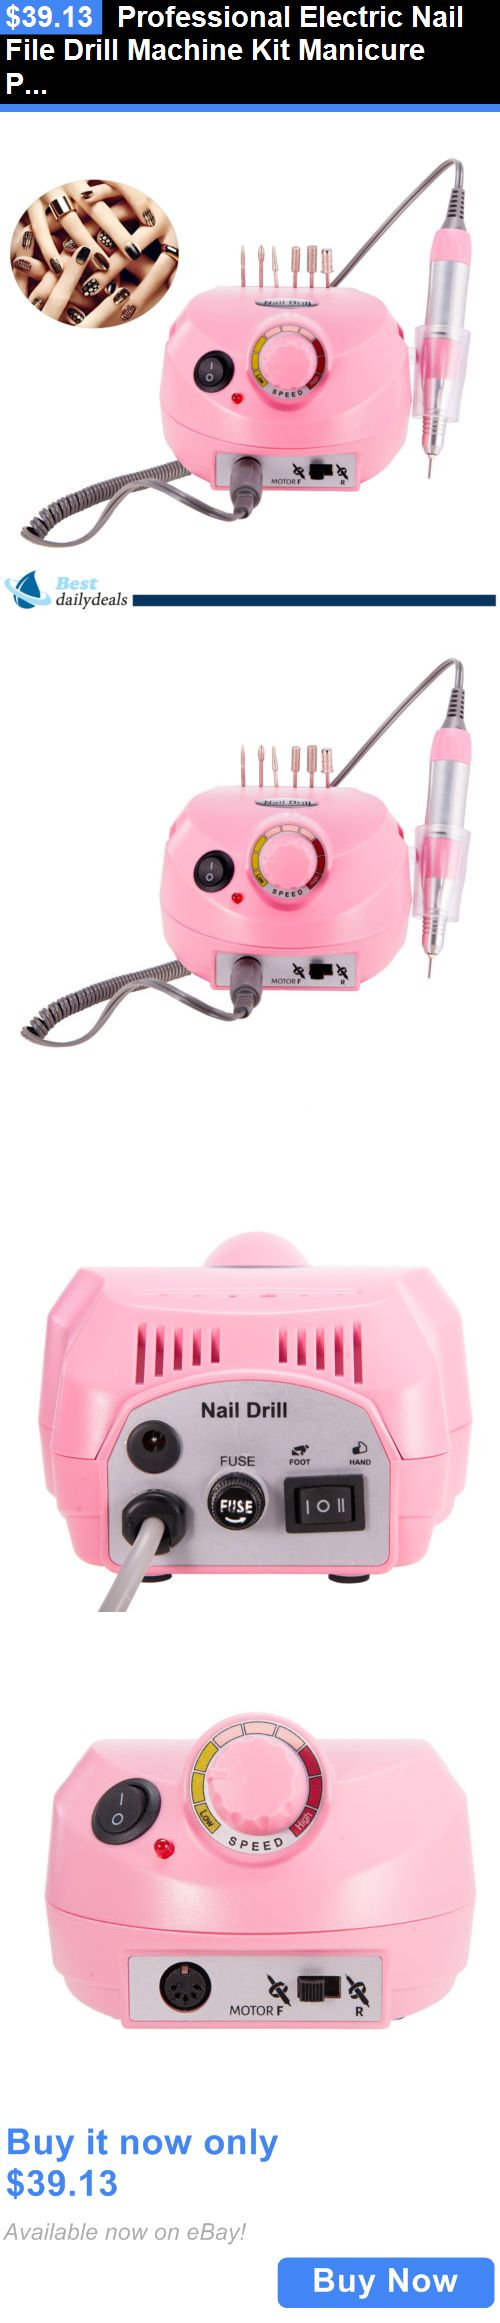 Electric Files and Tools: Professional Electric Nail File Drill Machine Kit Manicure Pedicure Art 30000Rpm BUY IT NOW ONLY: $39.13